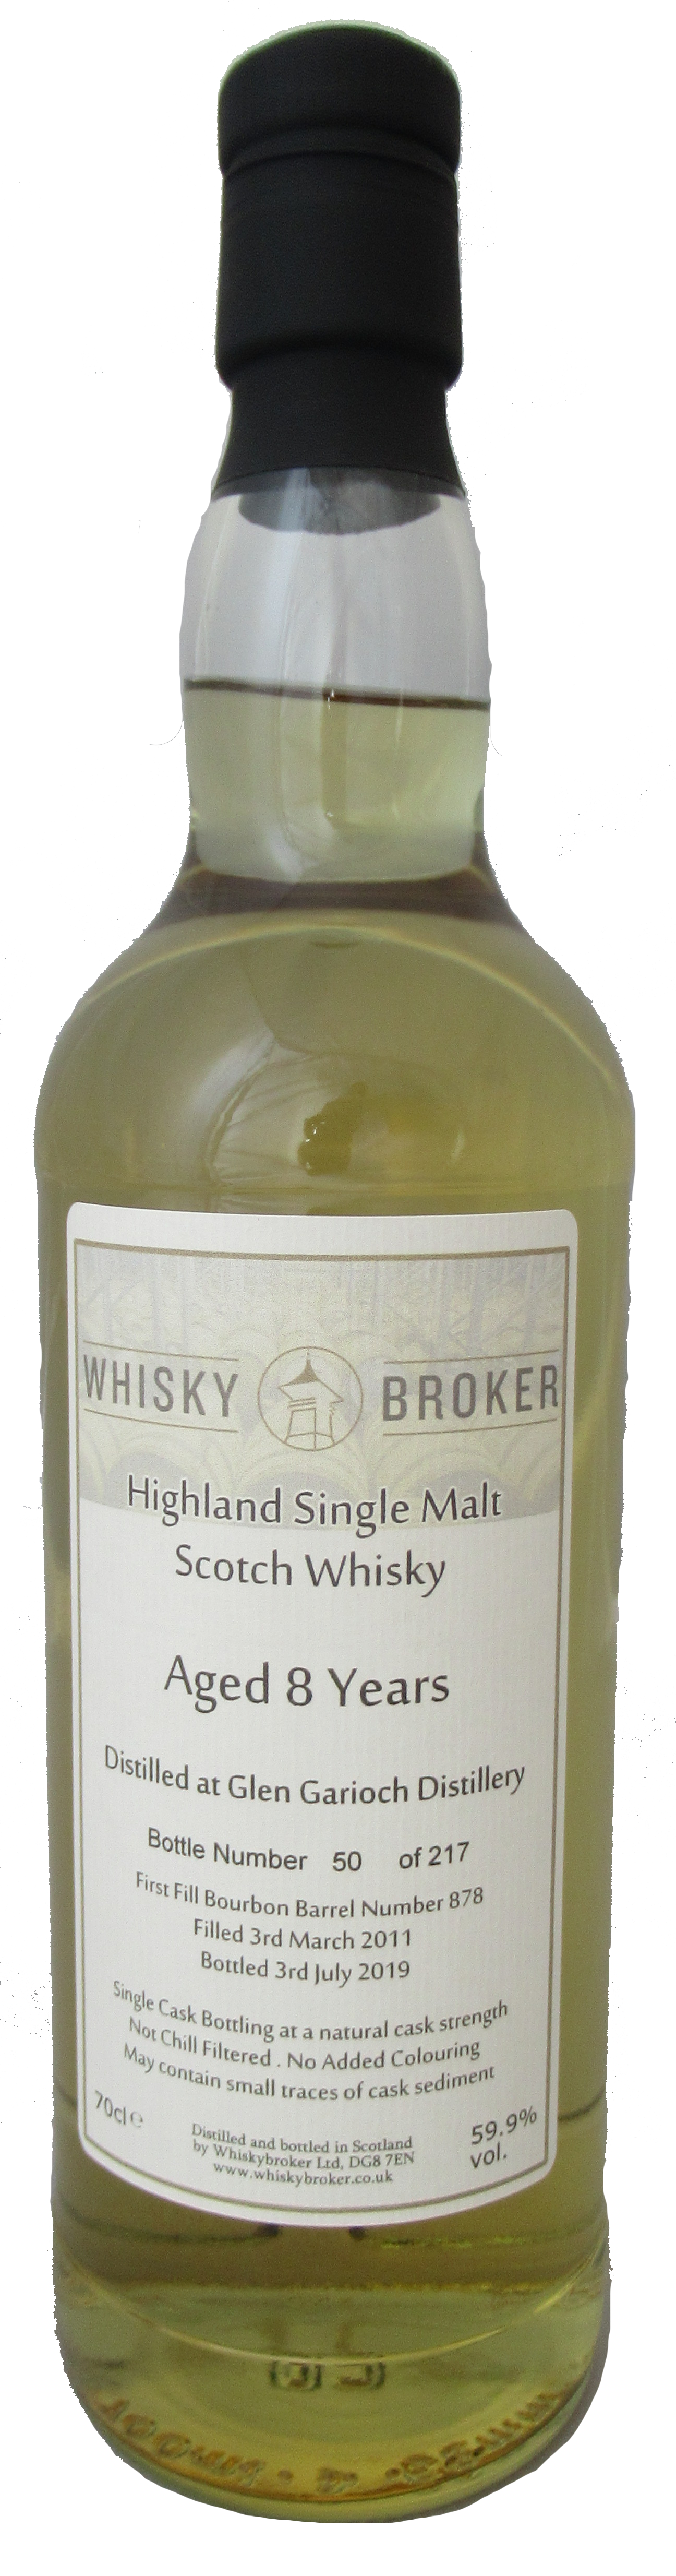 70cl, 8yo Distilled at Glen Garioch Distillery